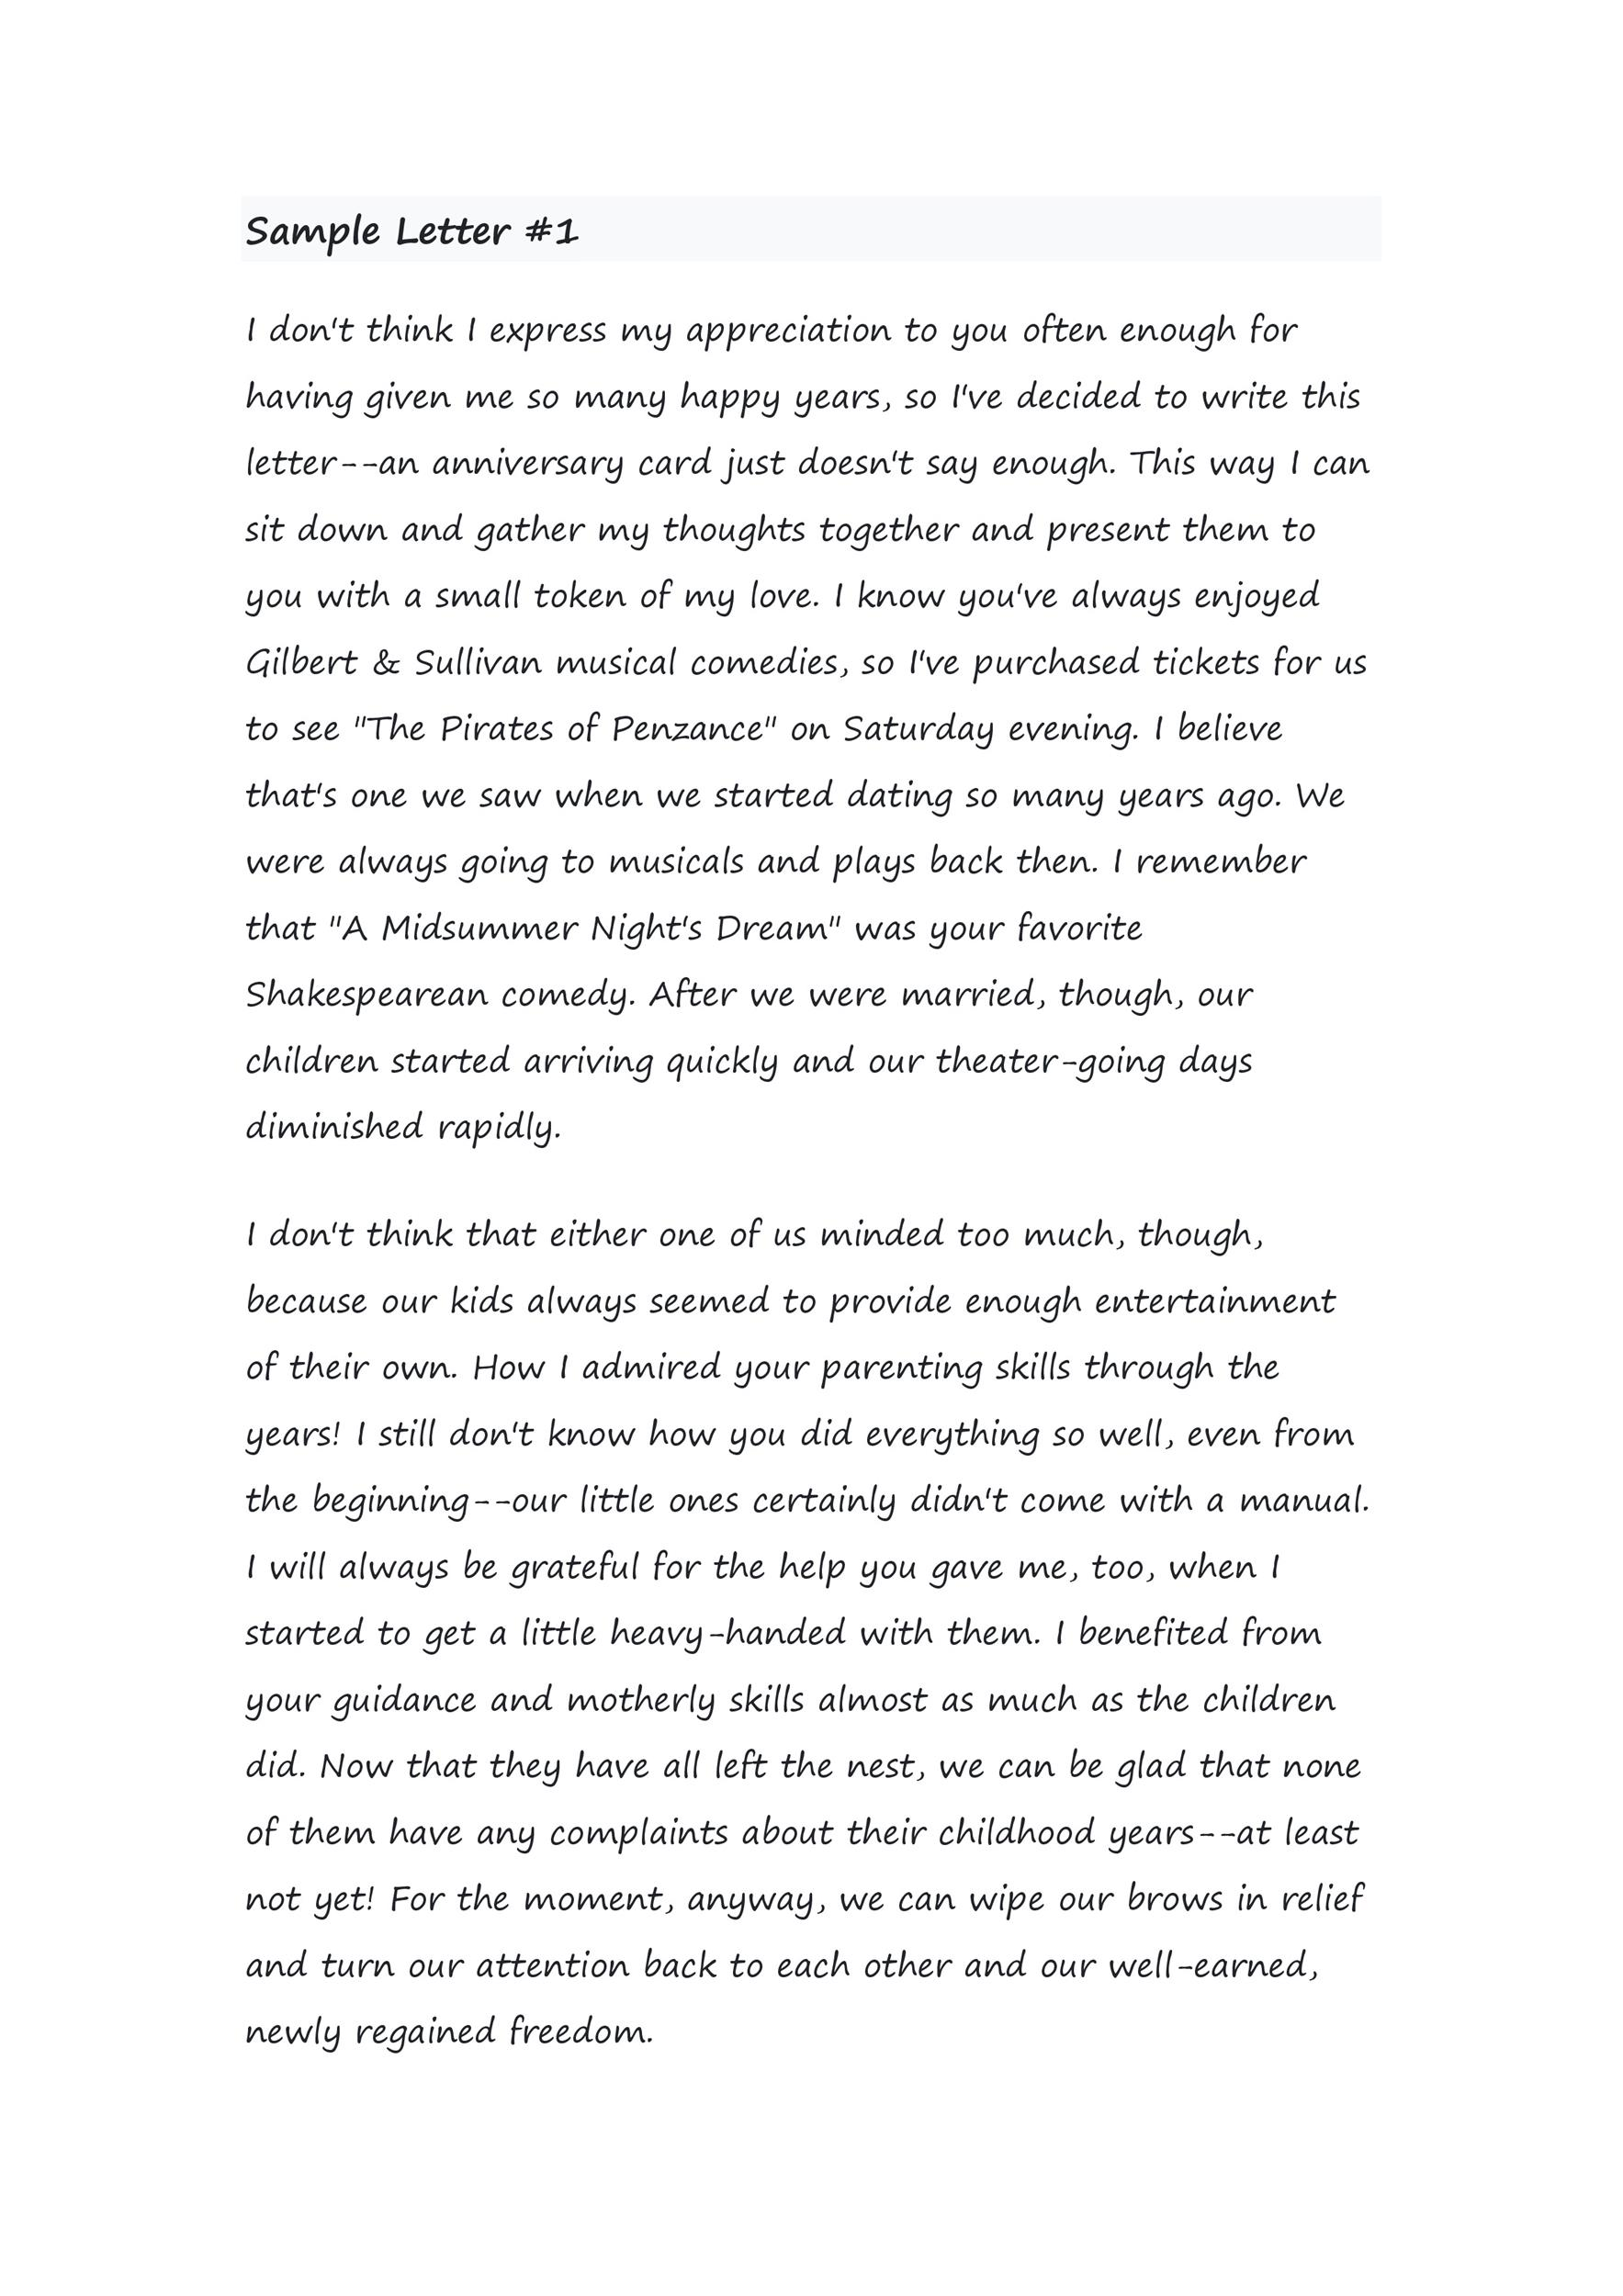 Free anniversary letter 02